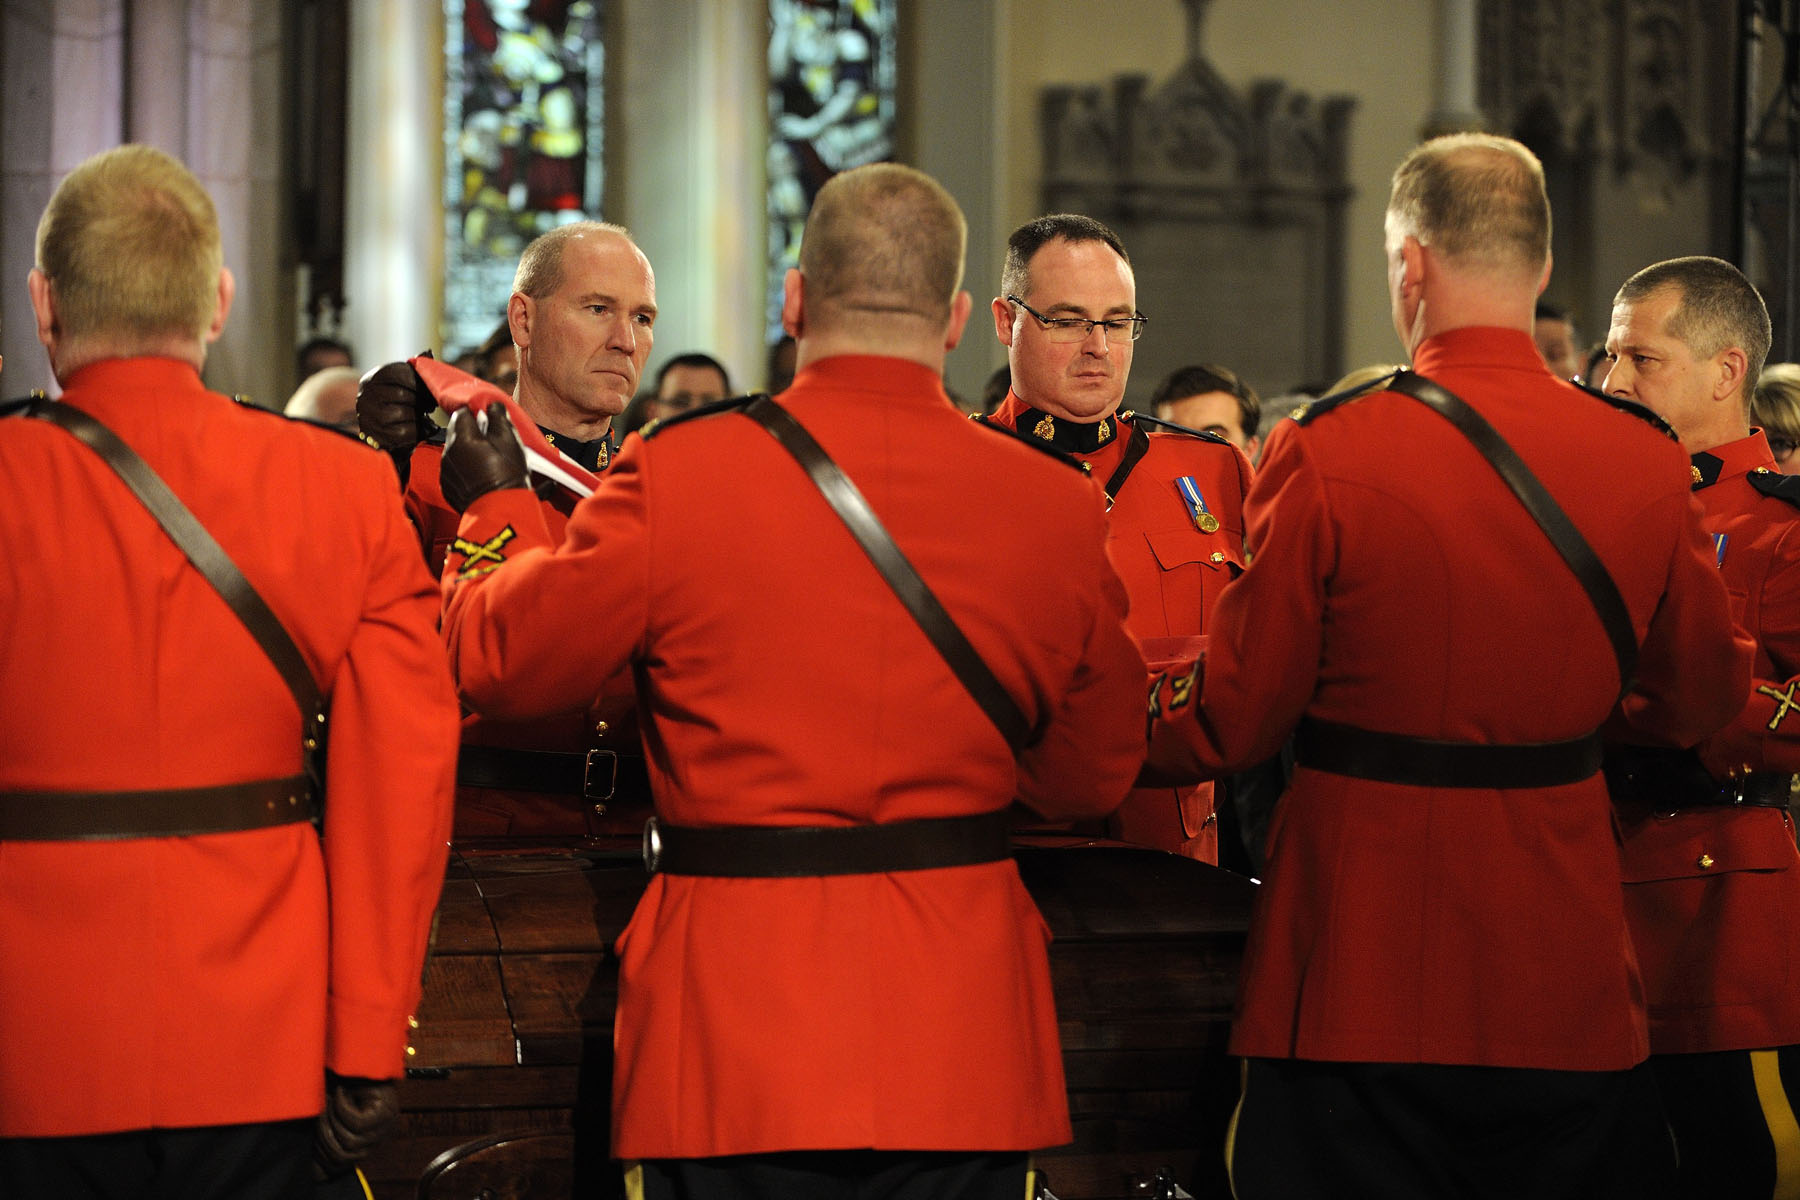 RCMP pallbearers carried former finance minister Jim Flaherty's casket.